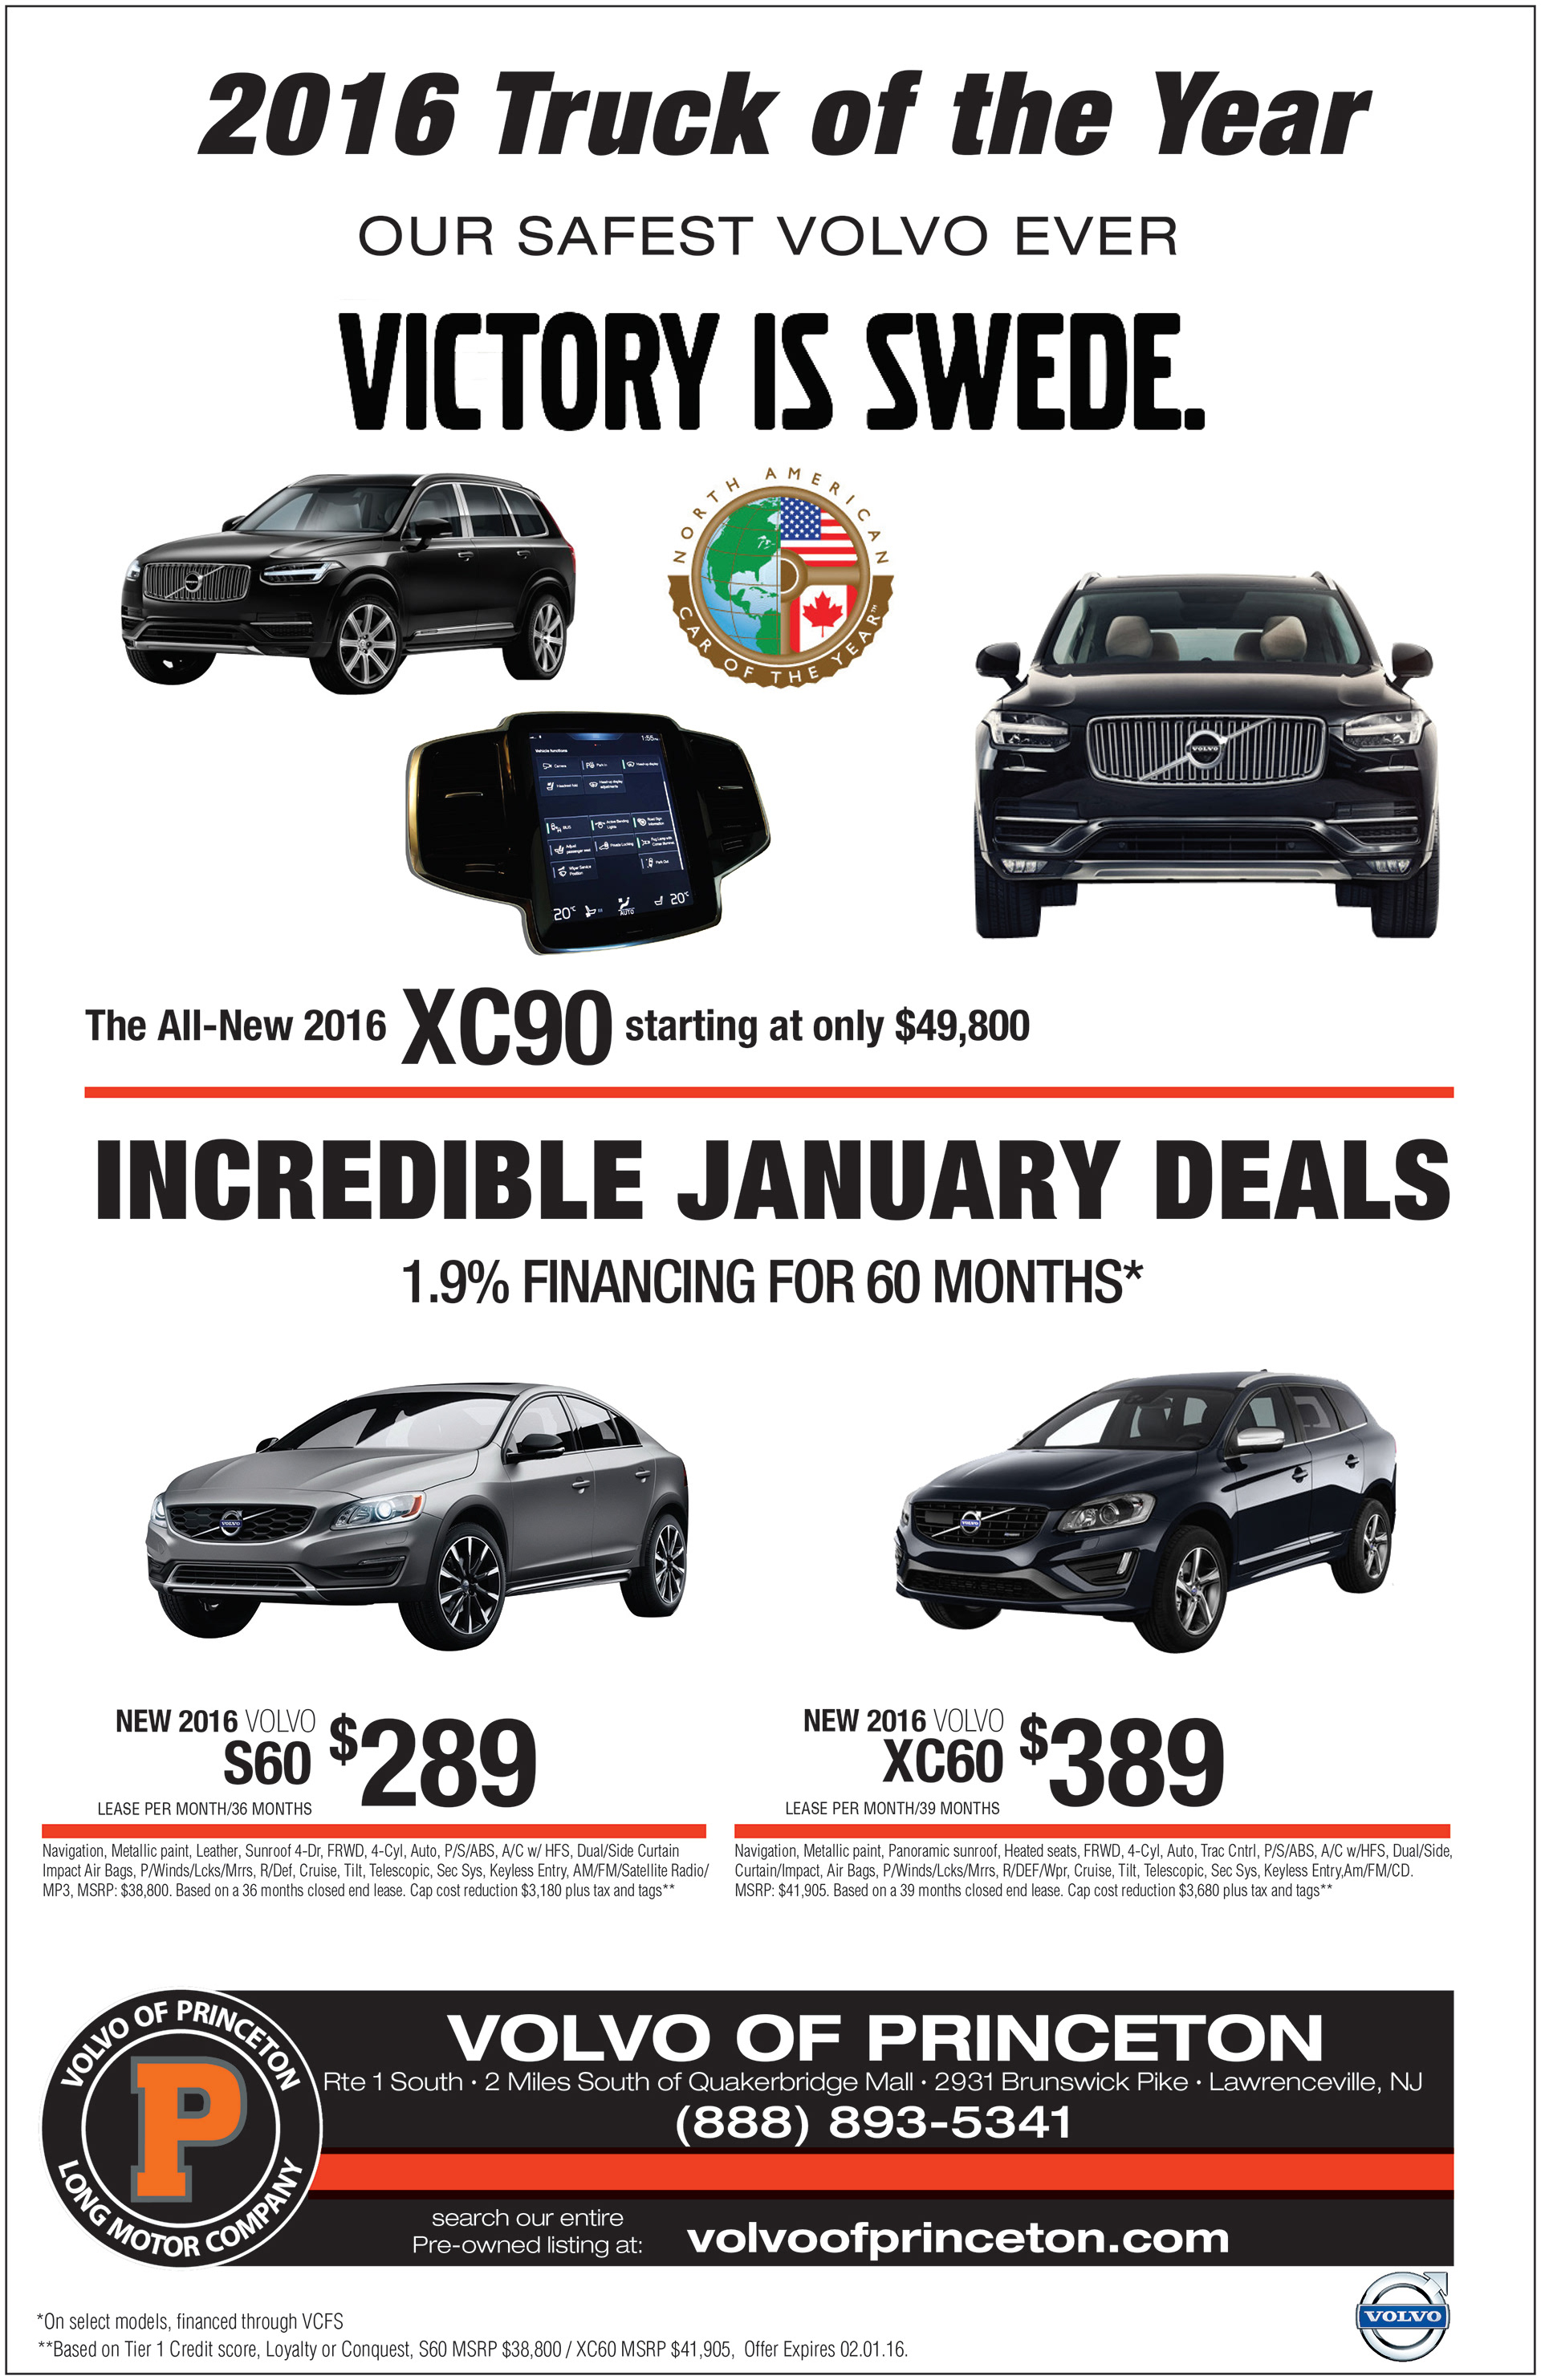 volvo rental nj a lease purchasing our leasing hero choose deals trucks usa opportunities truck view why and